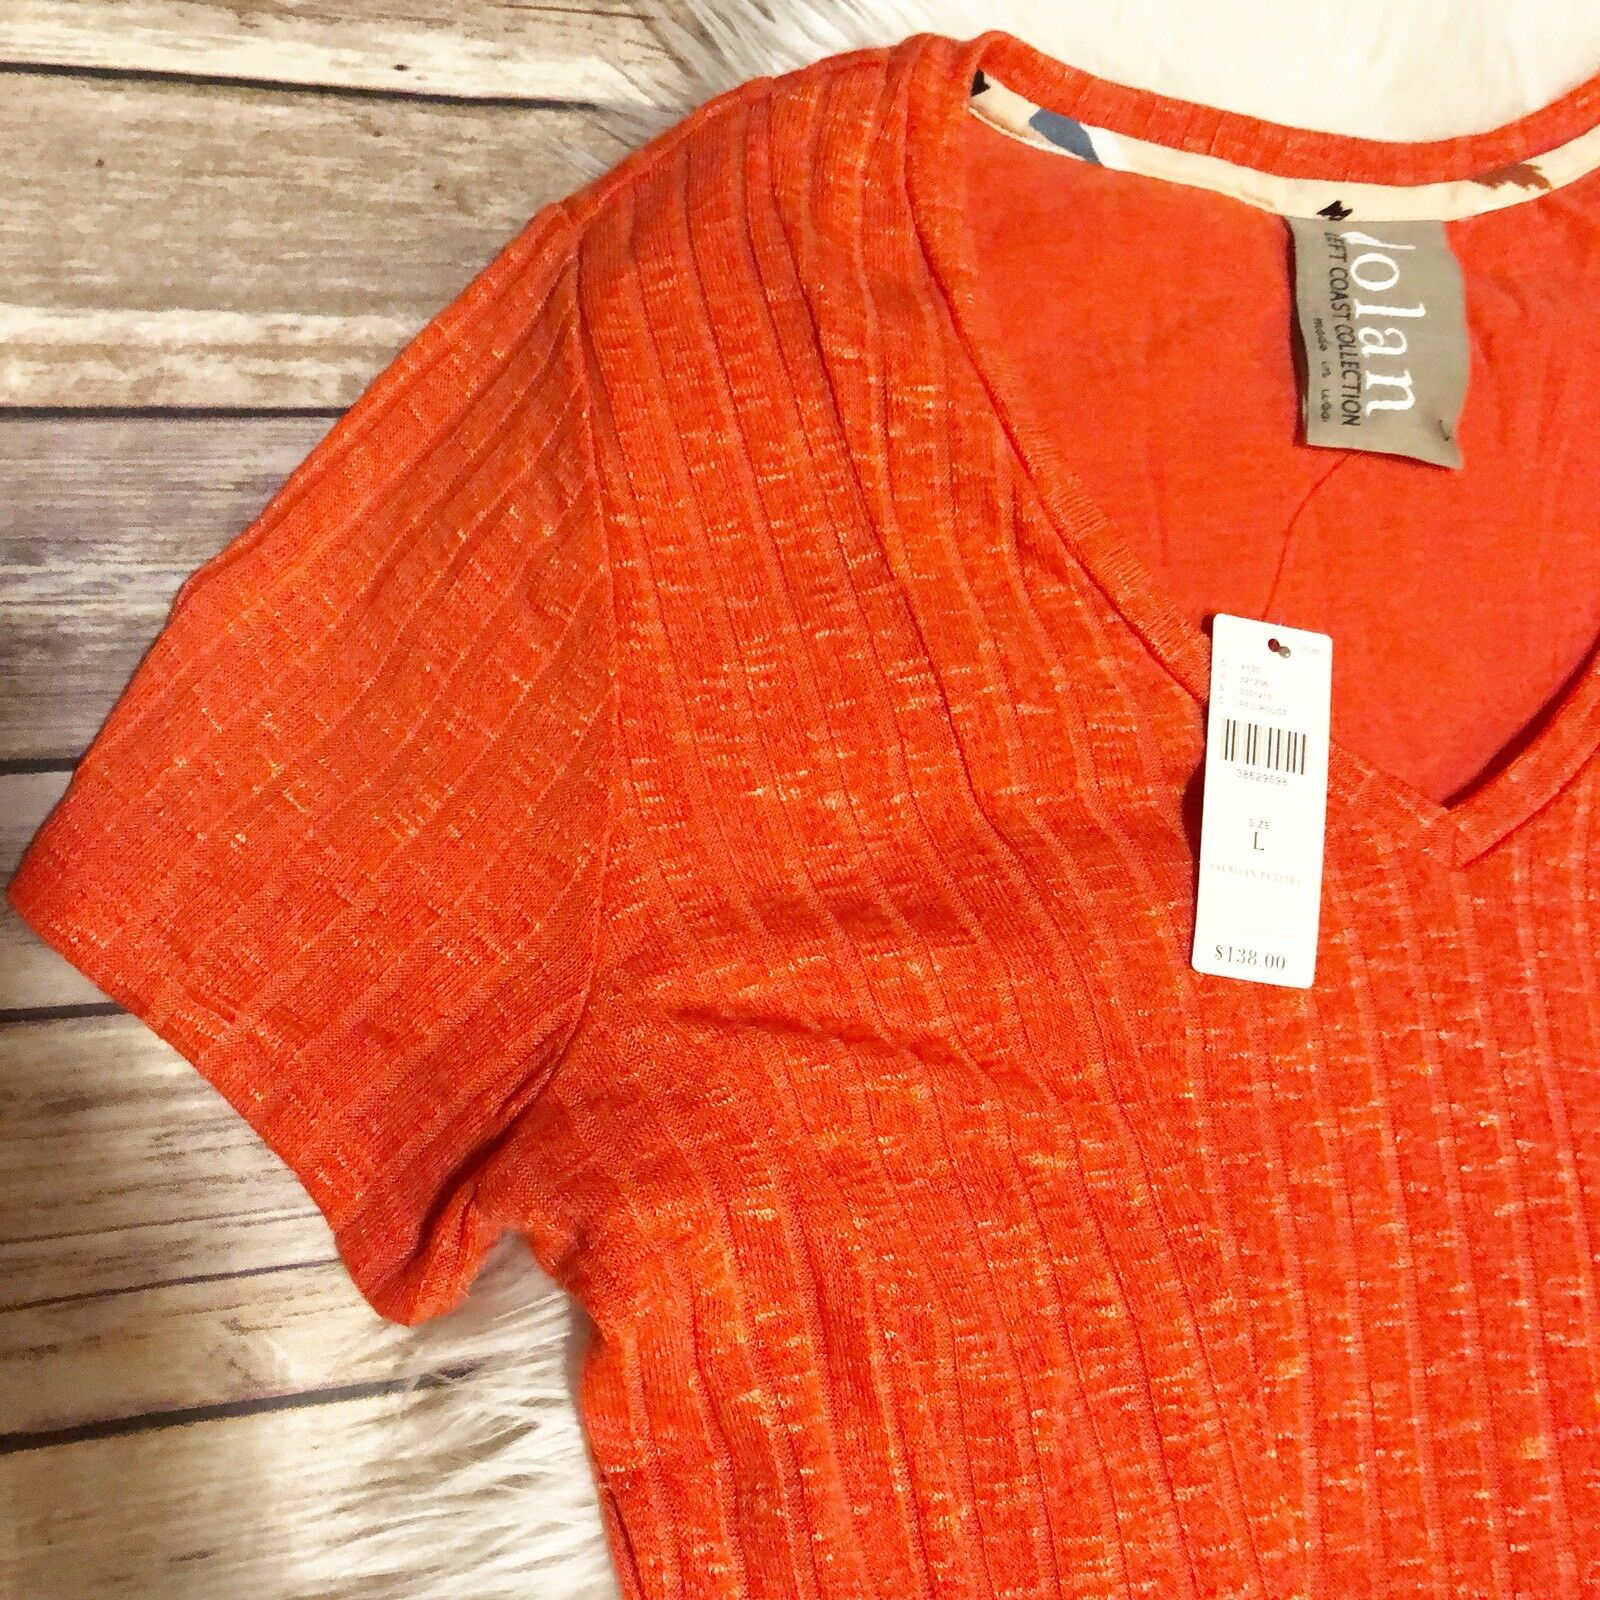 Anthgoldpologie DOLAN orange Elbow Sleeve Flare Flare Flare Knit Dress Size L 5e5143